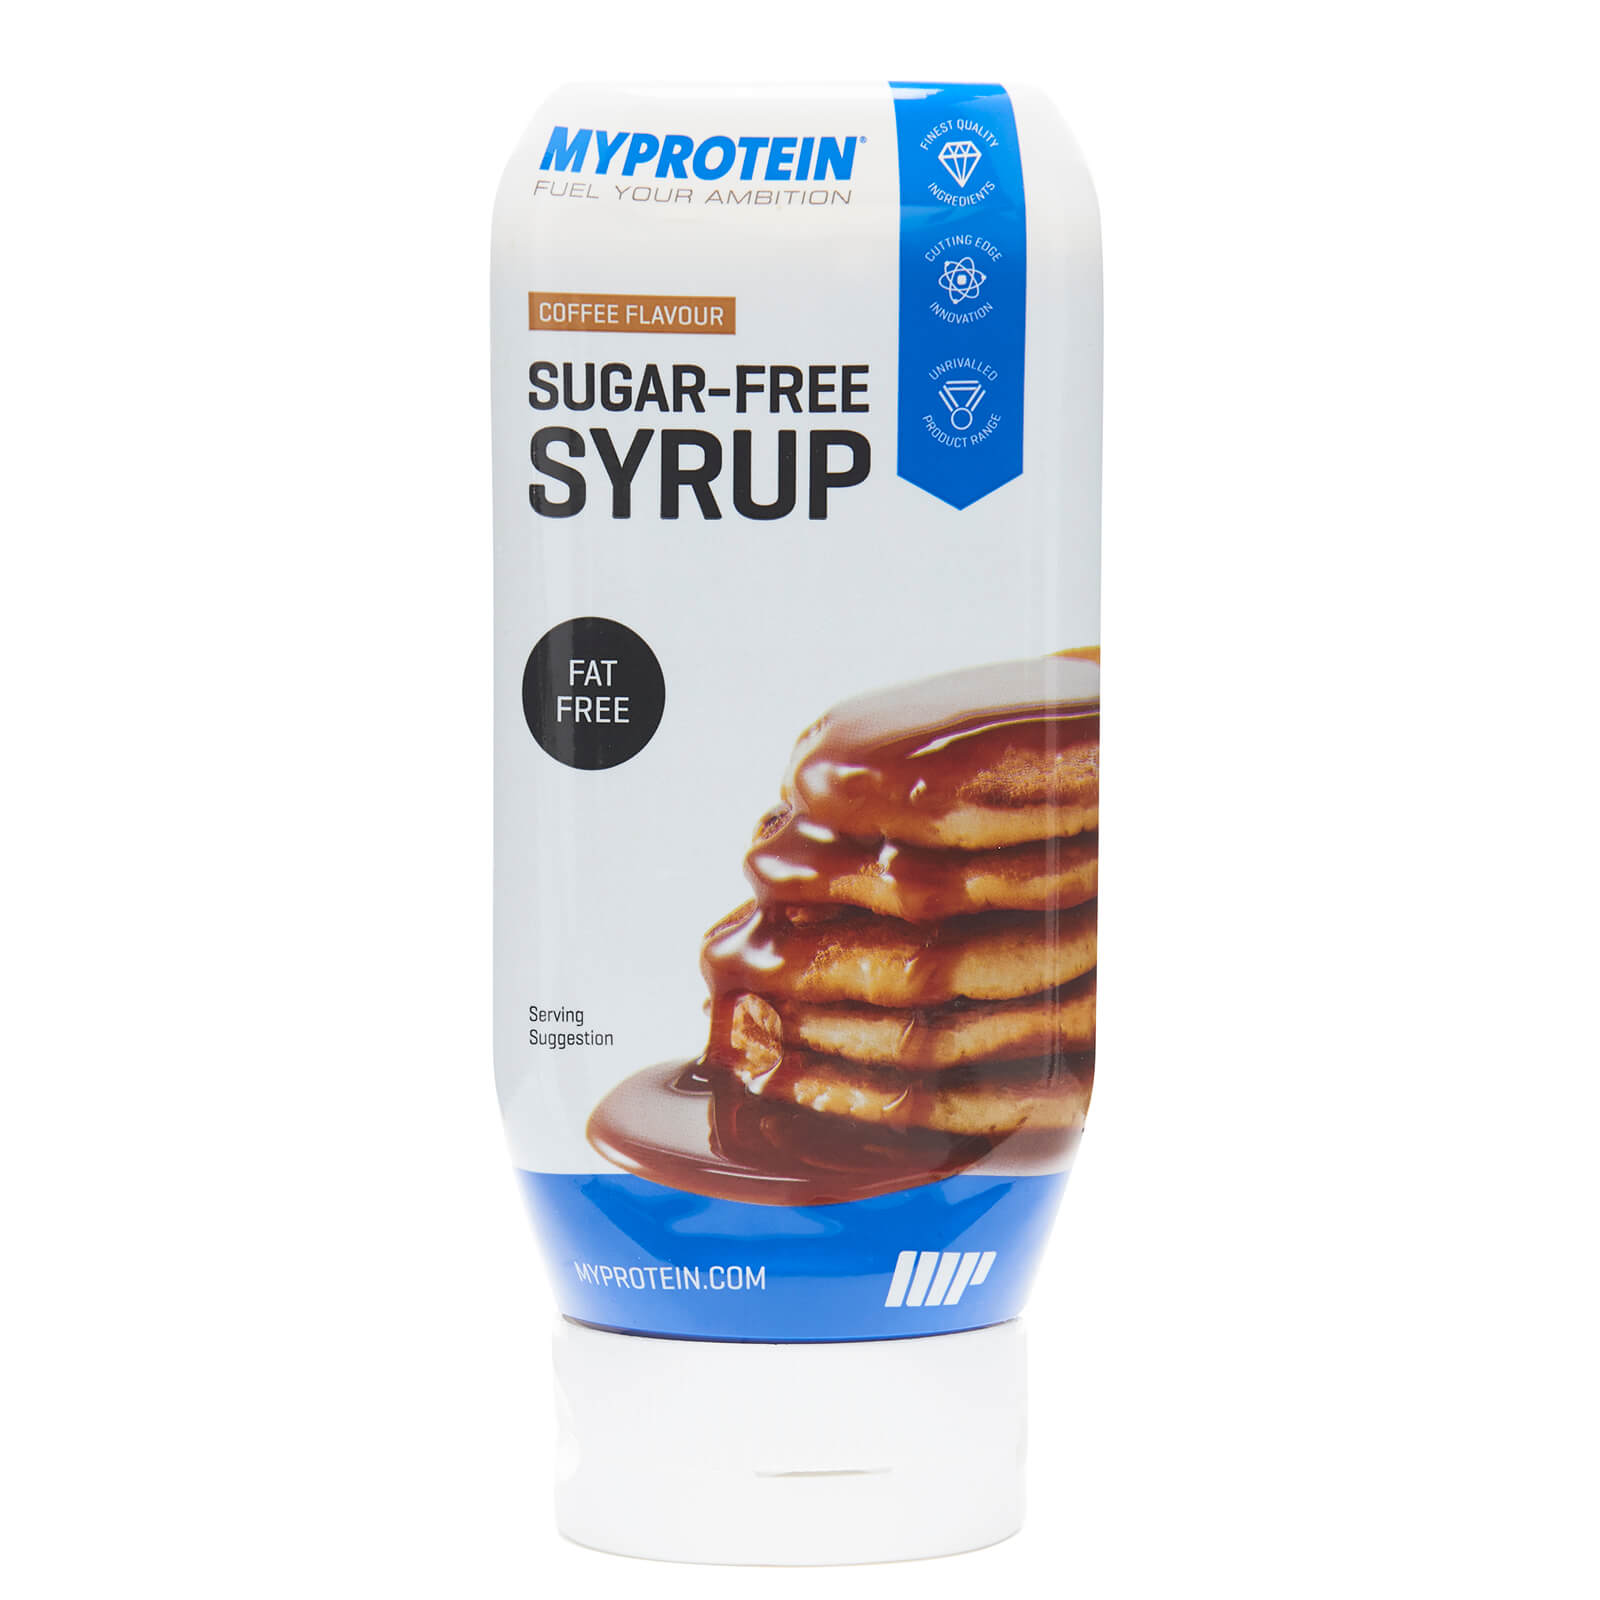 MYSYRUP - Coffee - 400ml